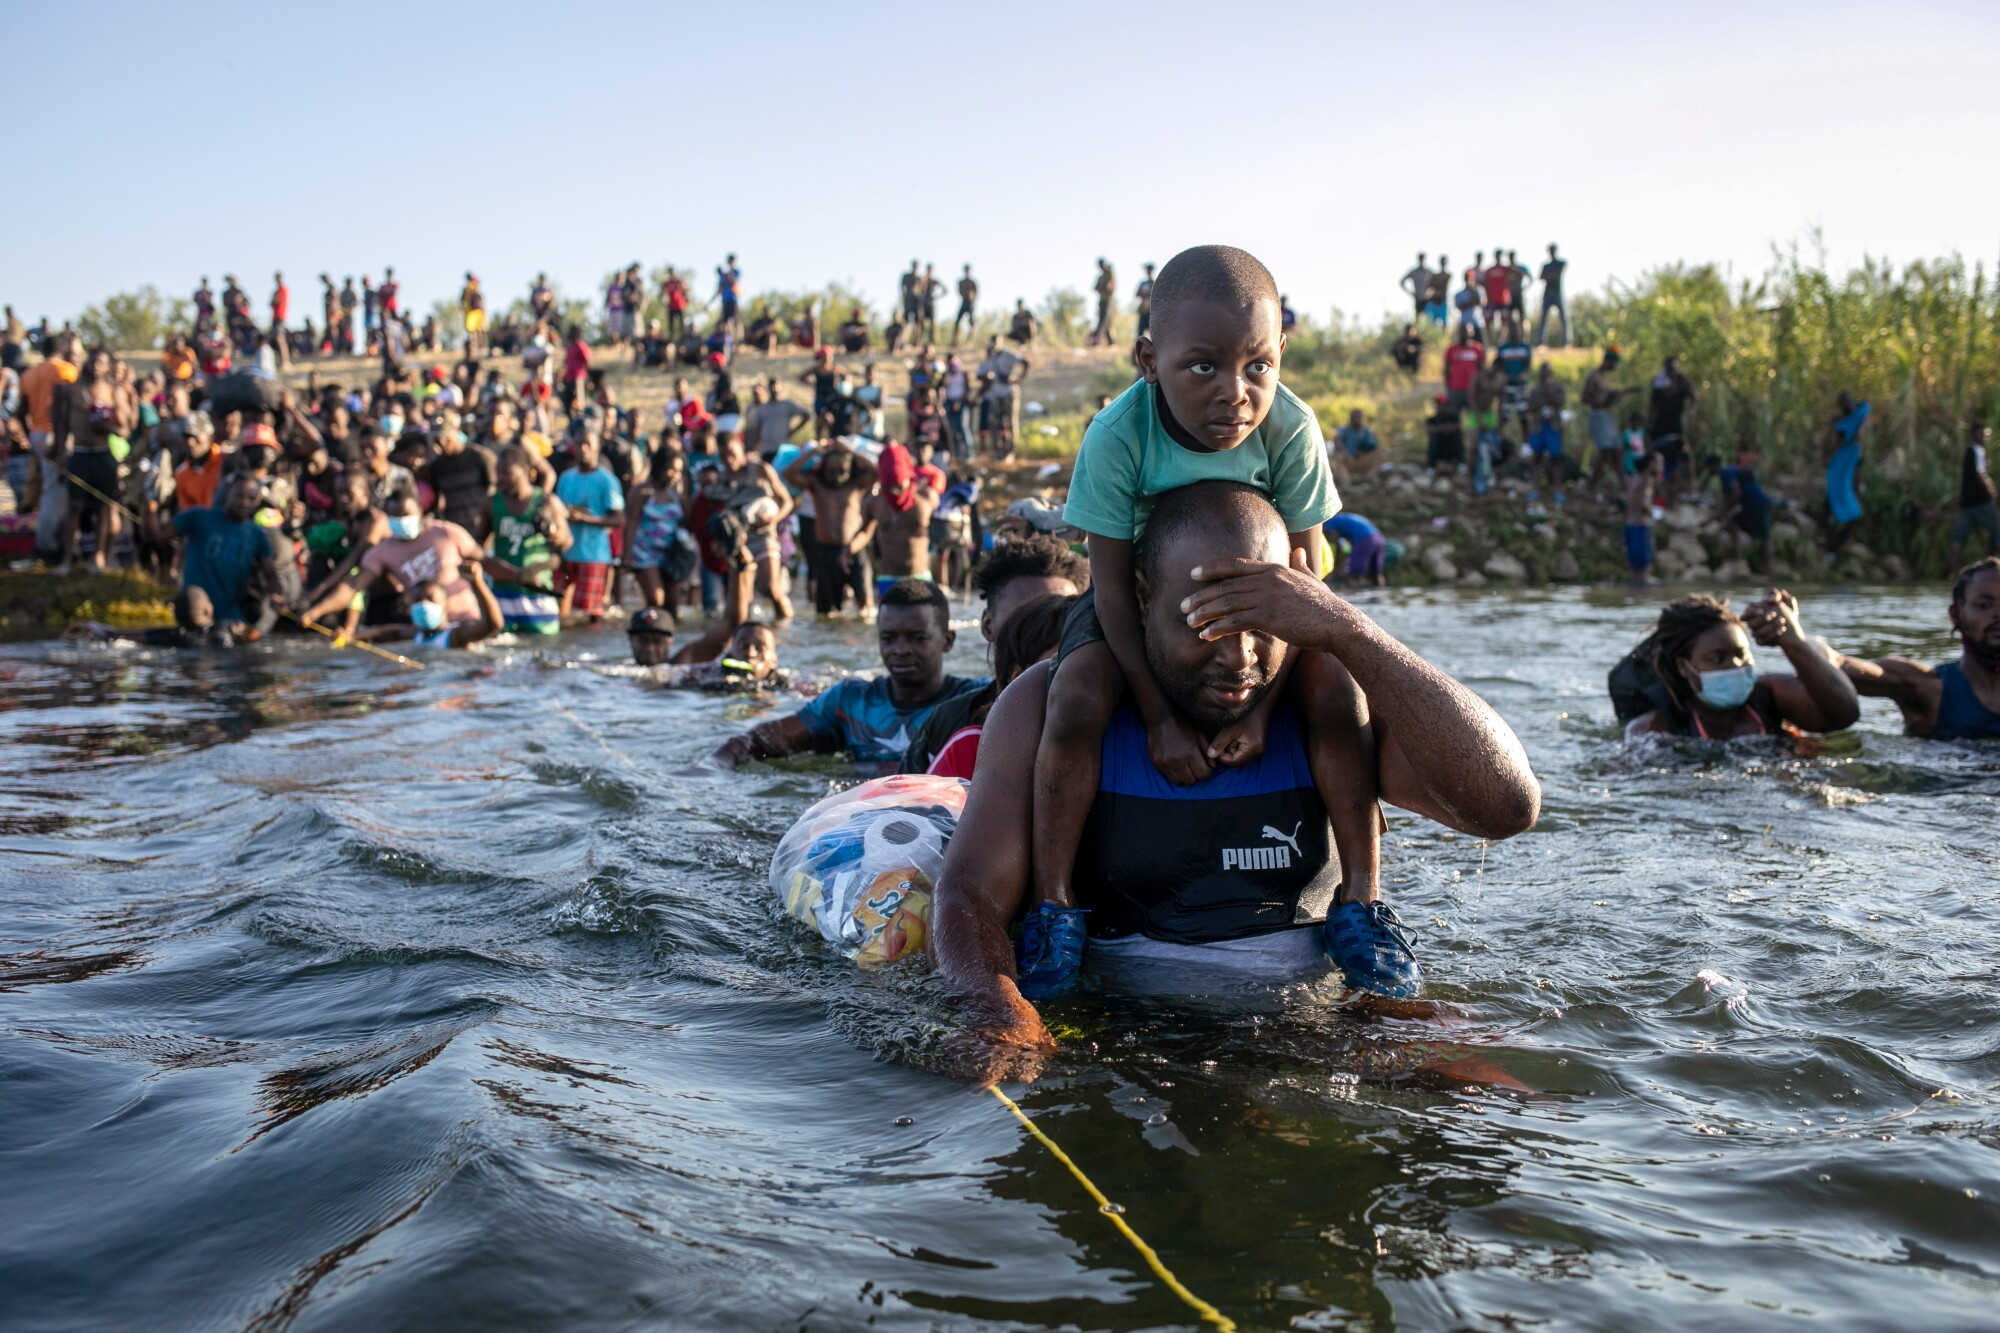 A man shields his face as he crosses the Rio Grande with a youngster on his shoulders.